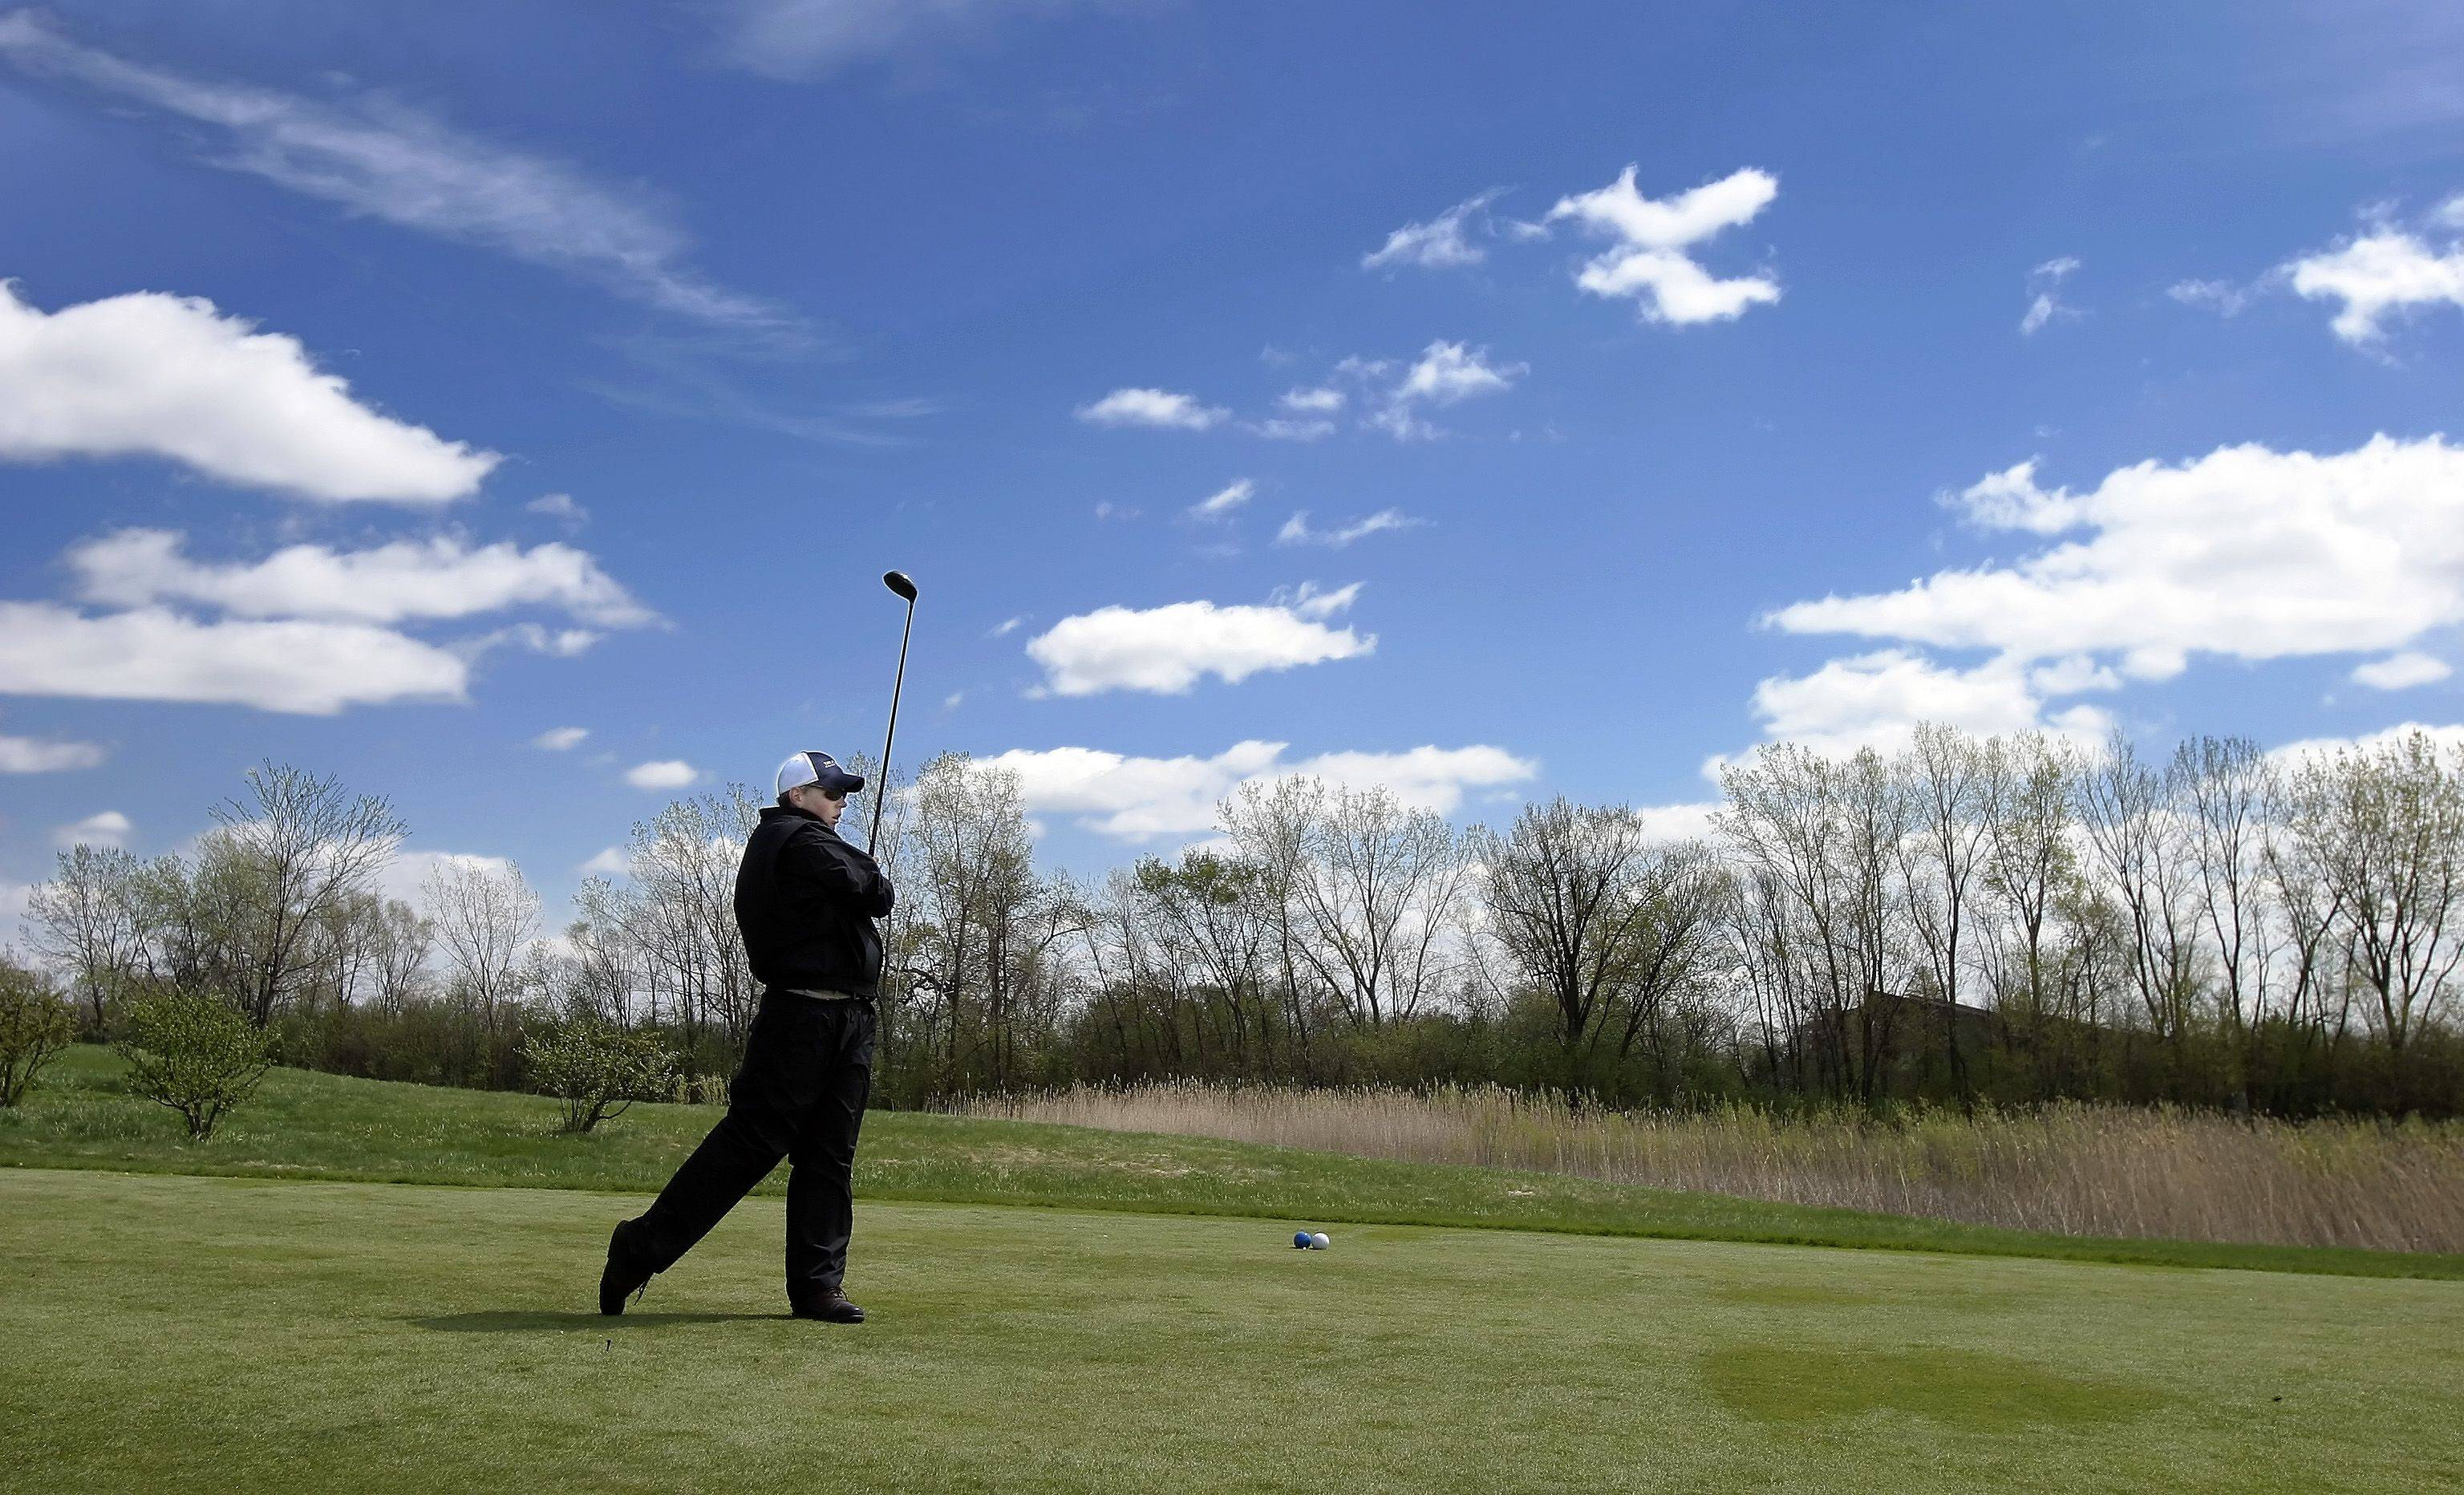 Maple Meadows Golf Course in Wood Dale is one of three owned by the DuPage Forest Preserve District, where candidates are debating the courses' future.